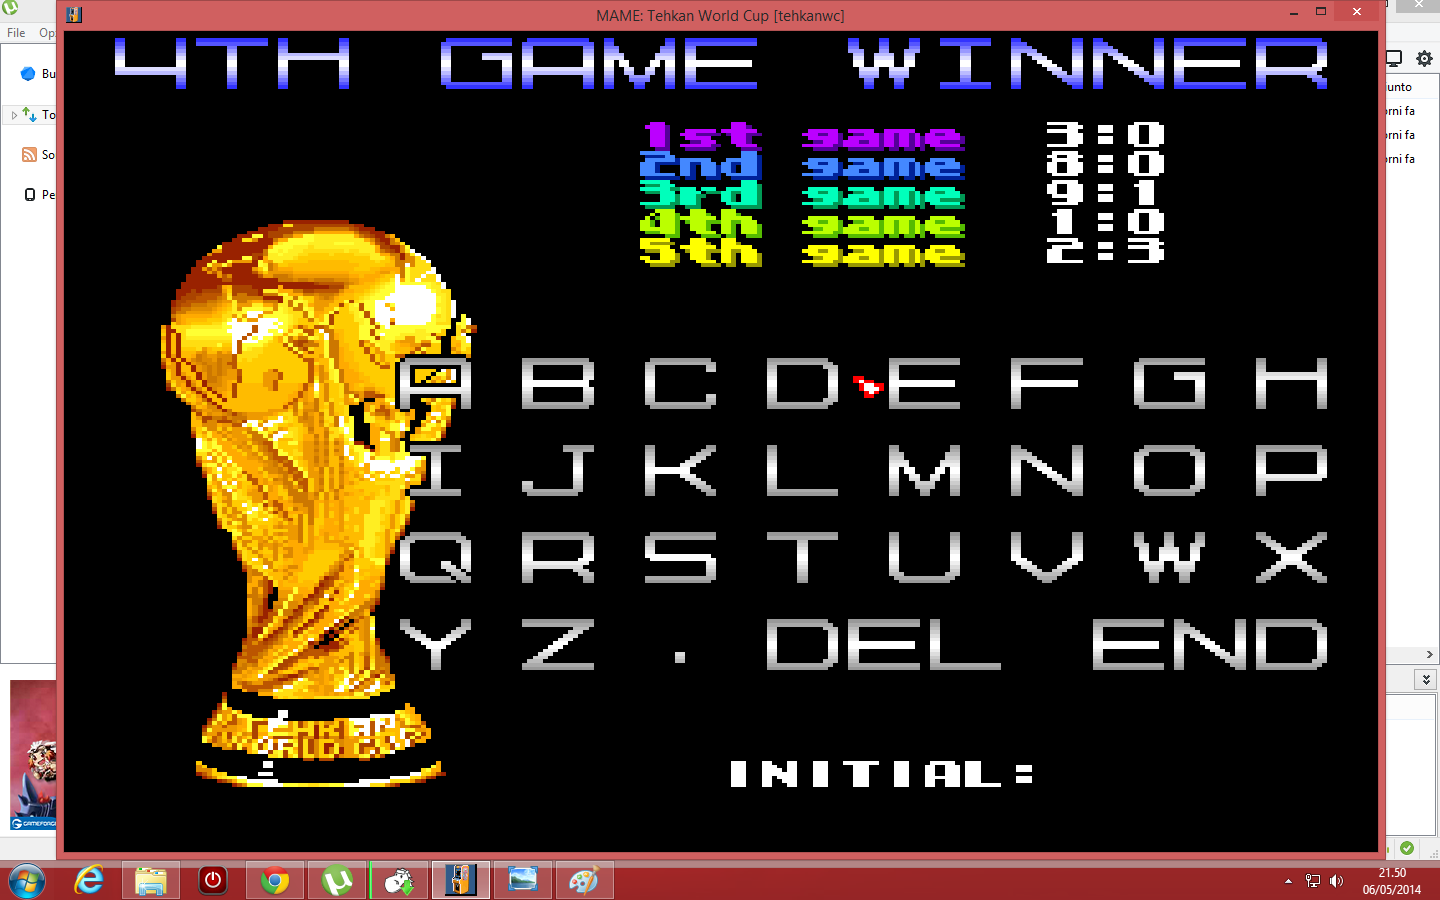 lenny2571: Tehkan World Cup: Fourth Match [Point Difference] [tehkanwc] (Arcade Emulated / M.A.M.E.) 1 points on 2014-05-06 14:51:09